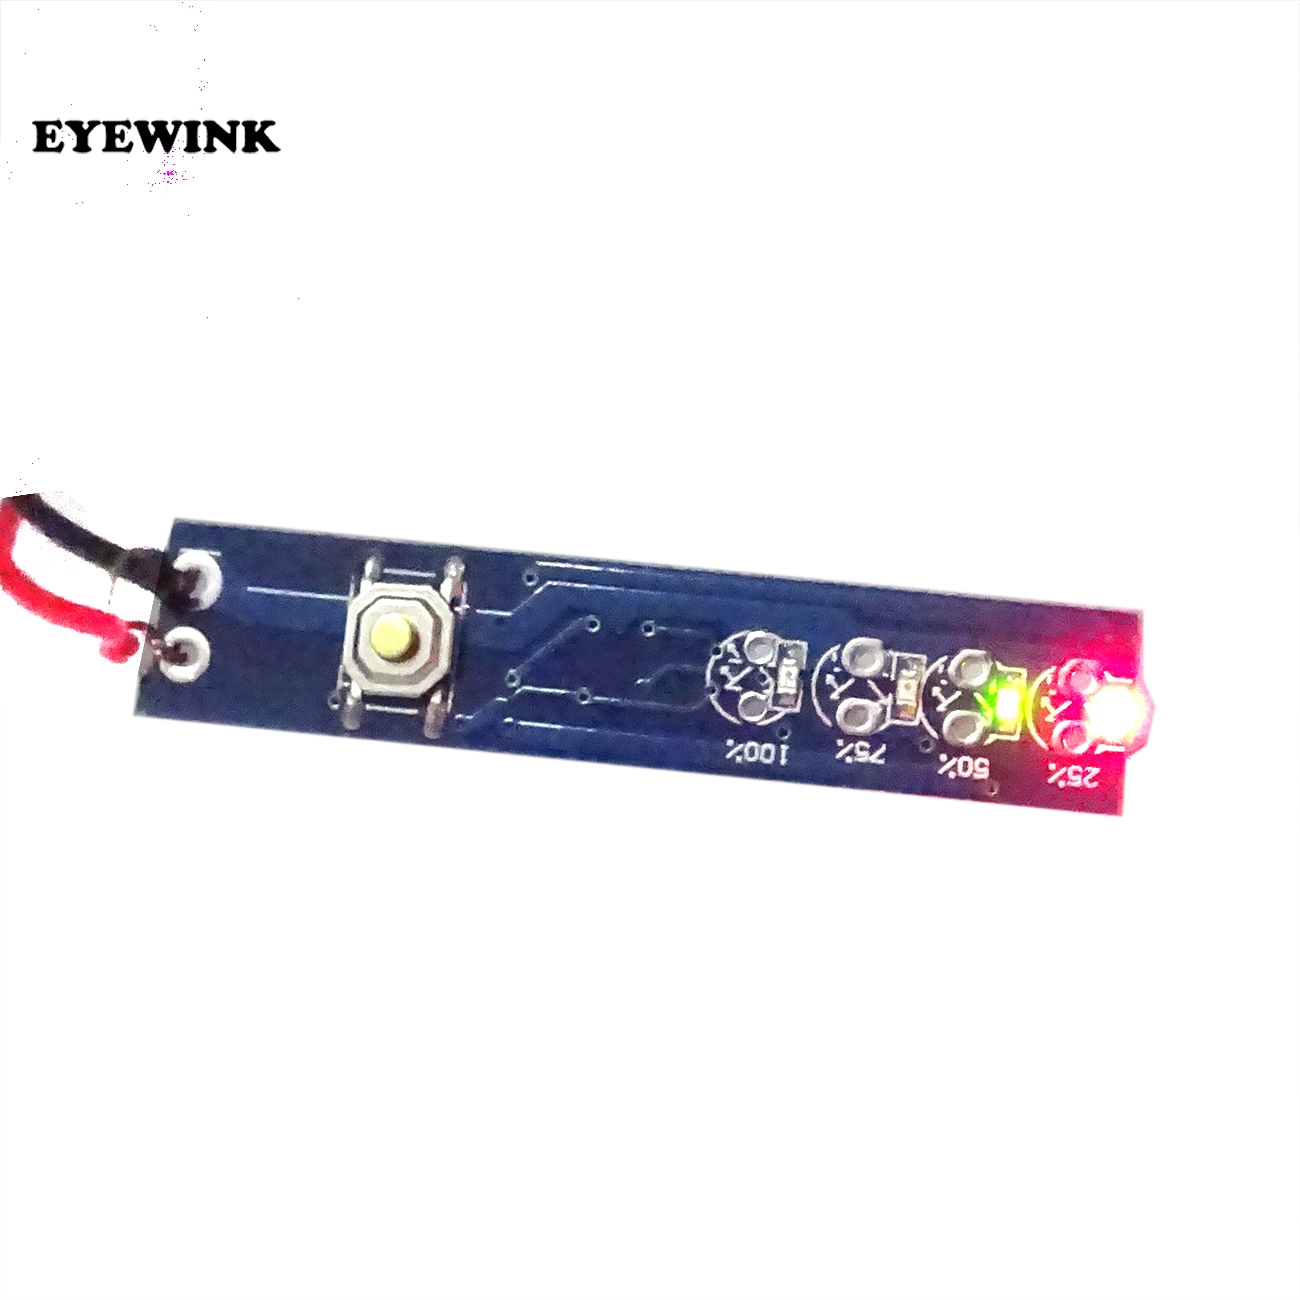 4 Serial Lithium Battery Capacity Indicator LED For 4Pcs 4S Battery Lithium Ion